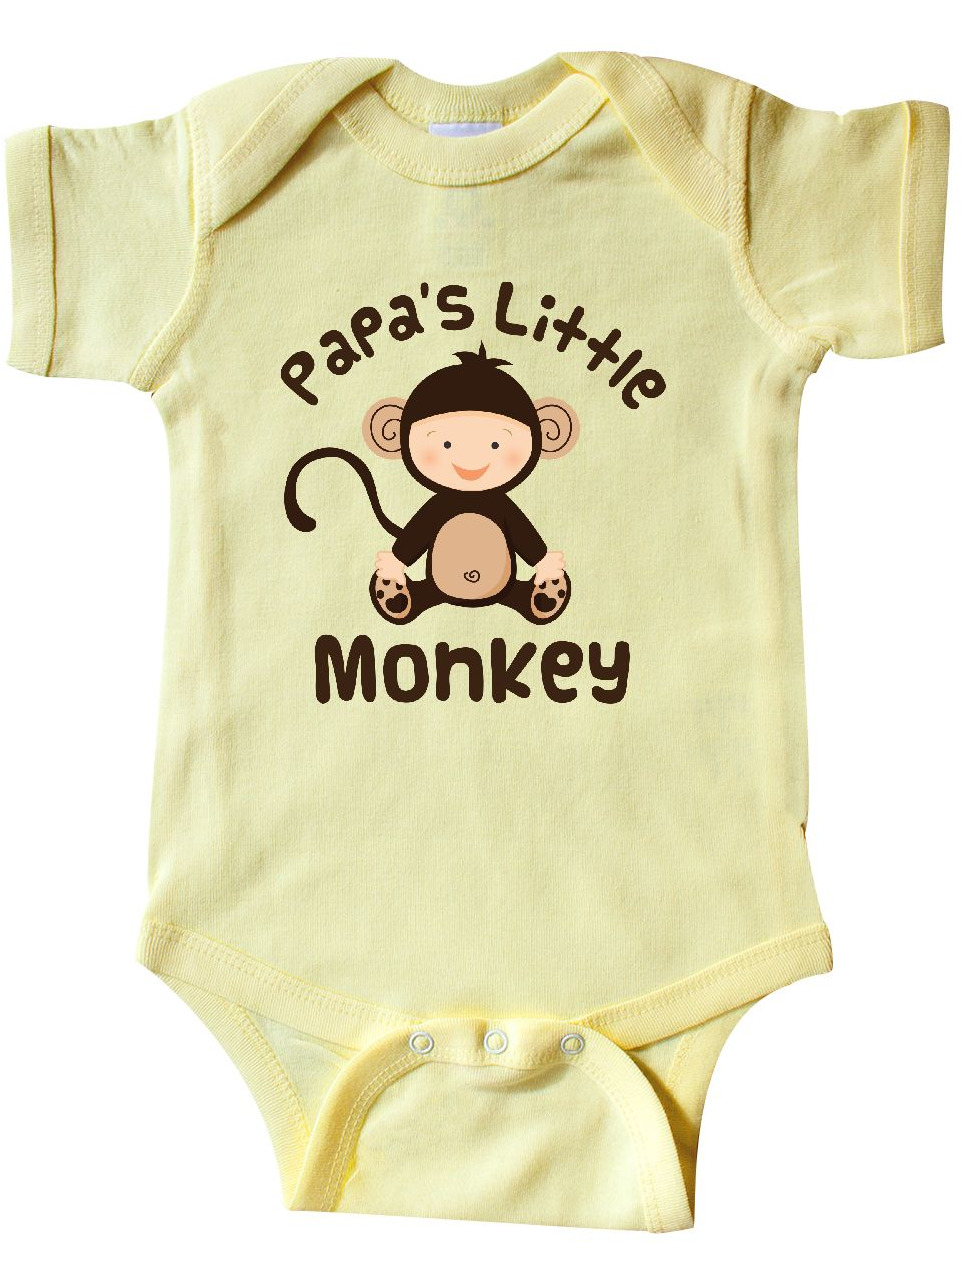 NEW Baby Boys Bodysuit 6-9 Month Monkey Creeper Outfit 1 Piece Yellow